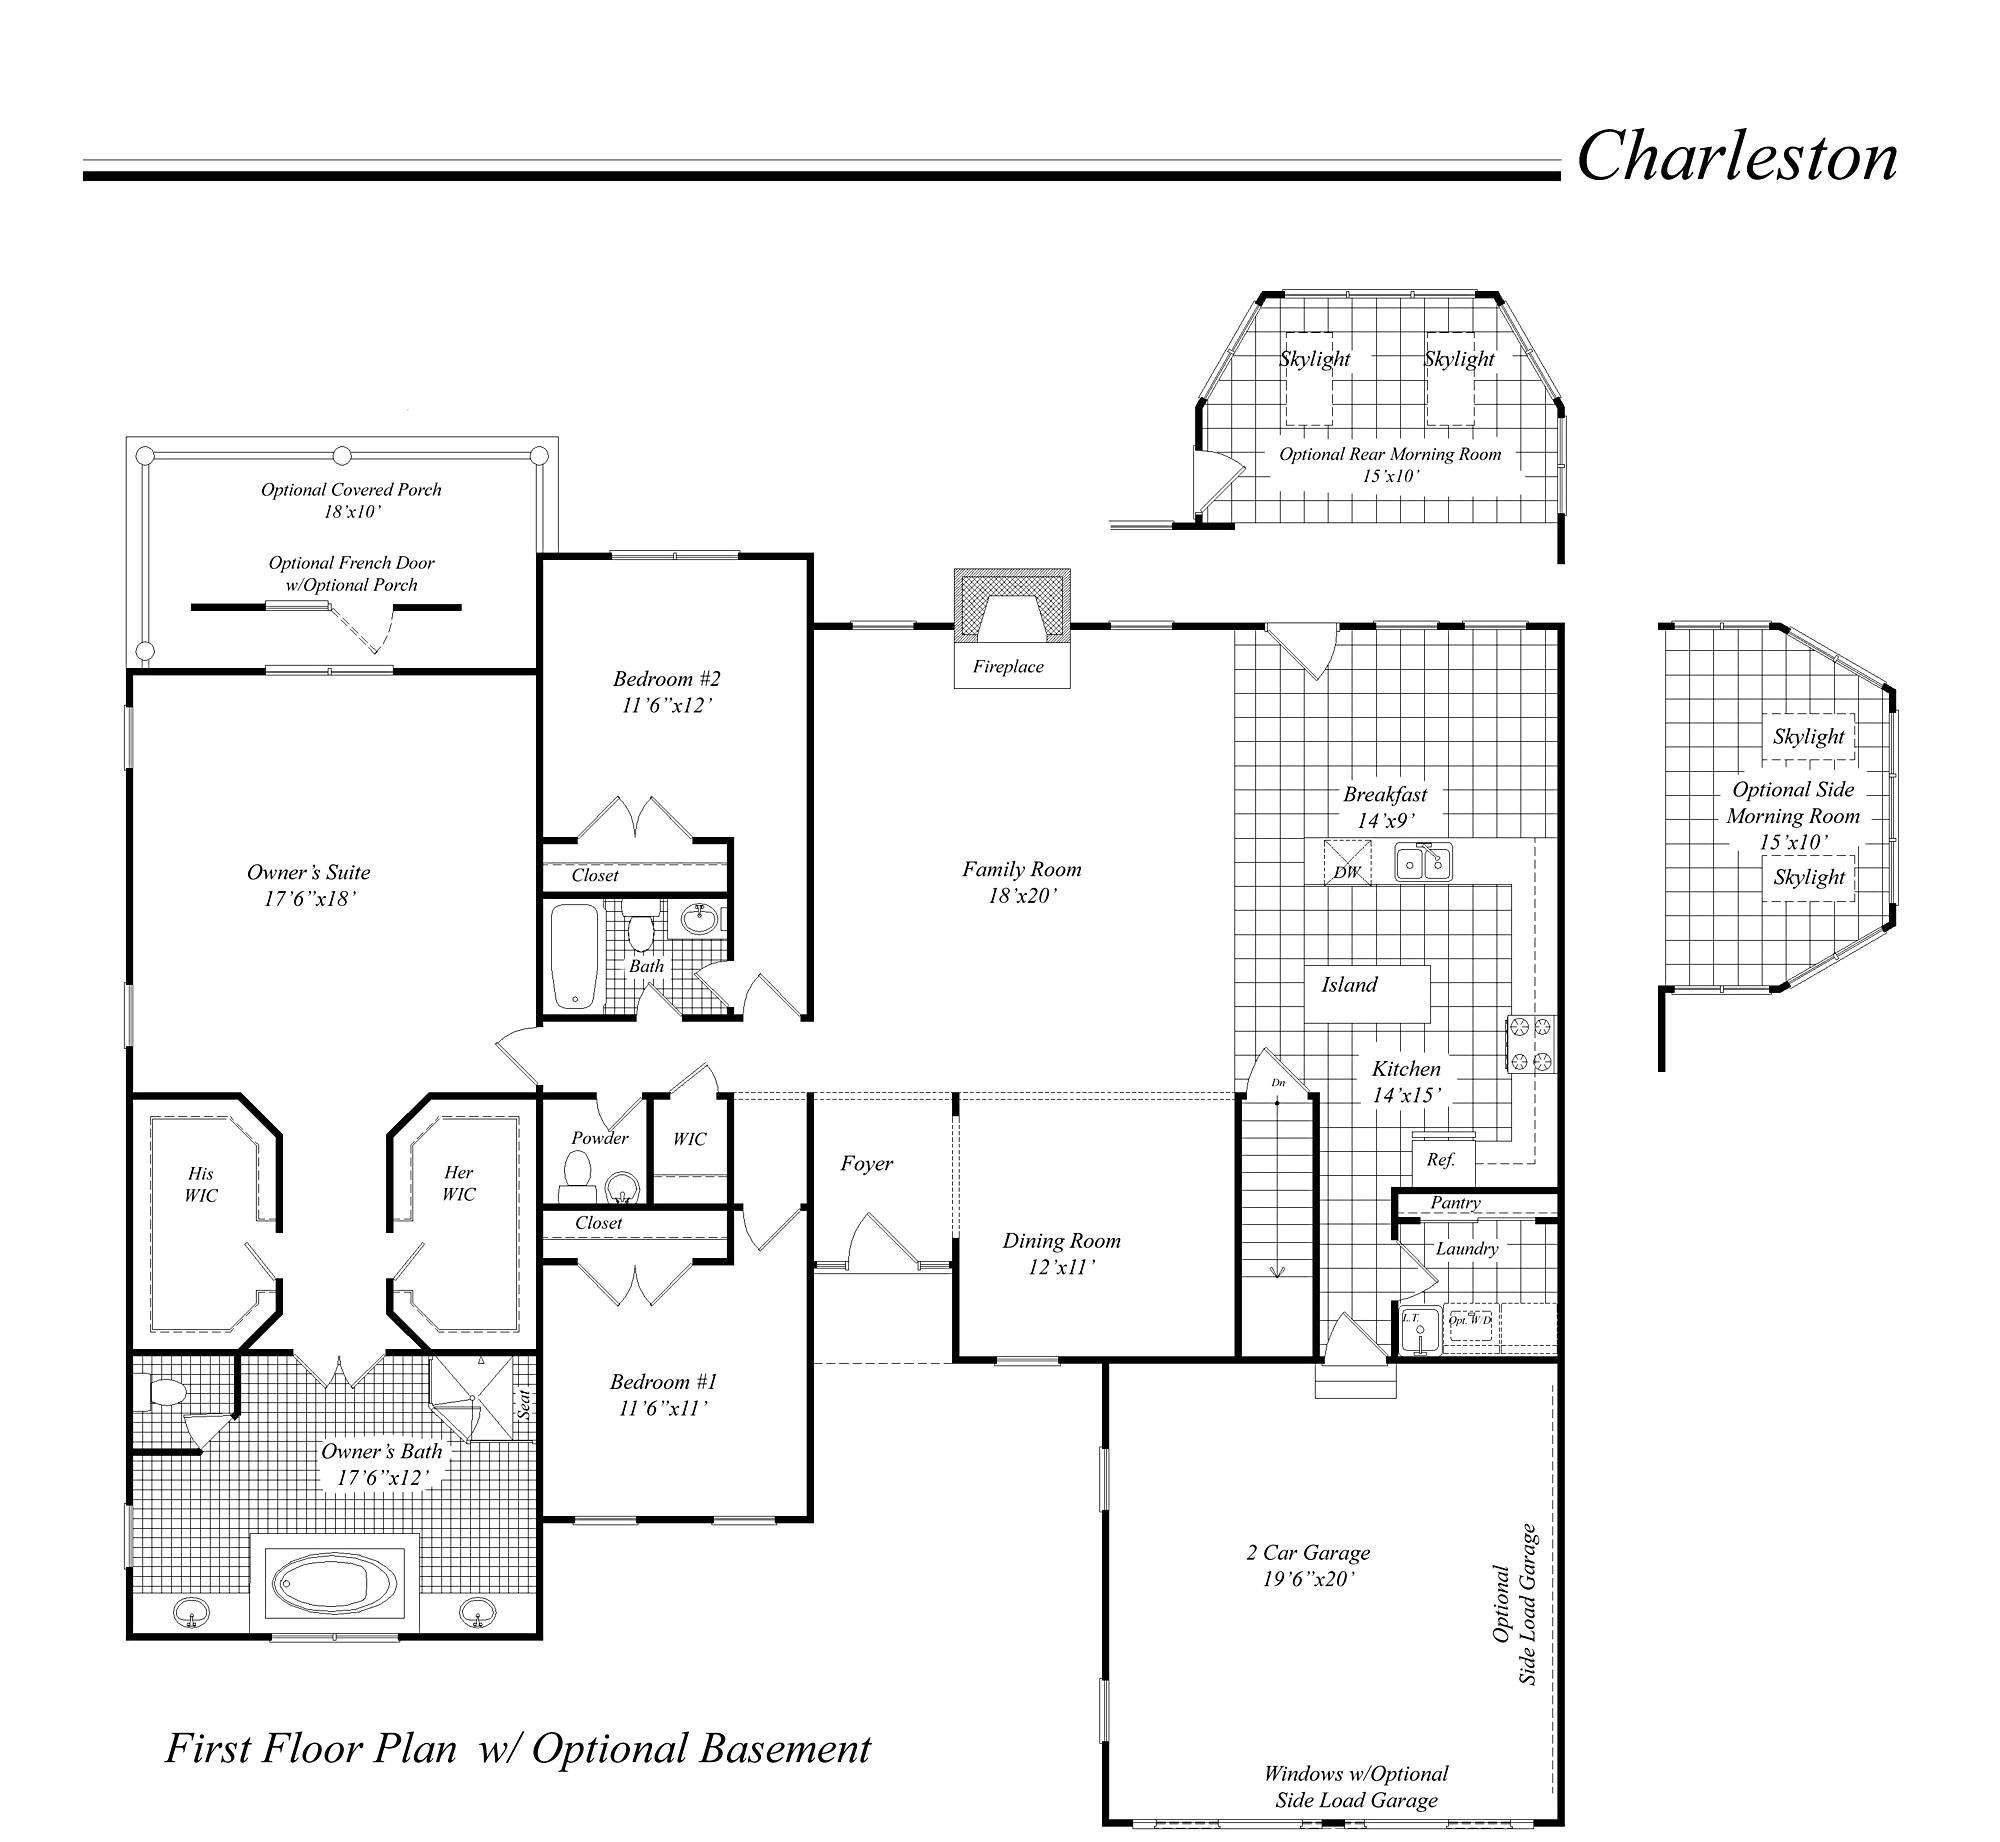 oak creek homes floor plans lovely oak creek homes floor plans fresh adams homes floor plans lovely